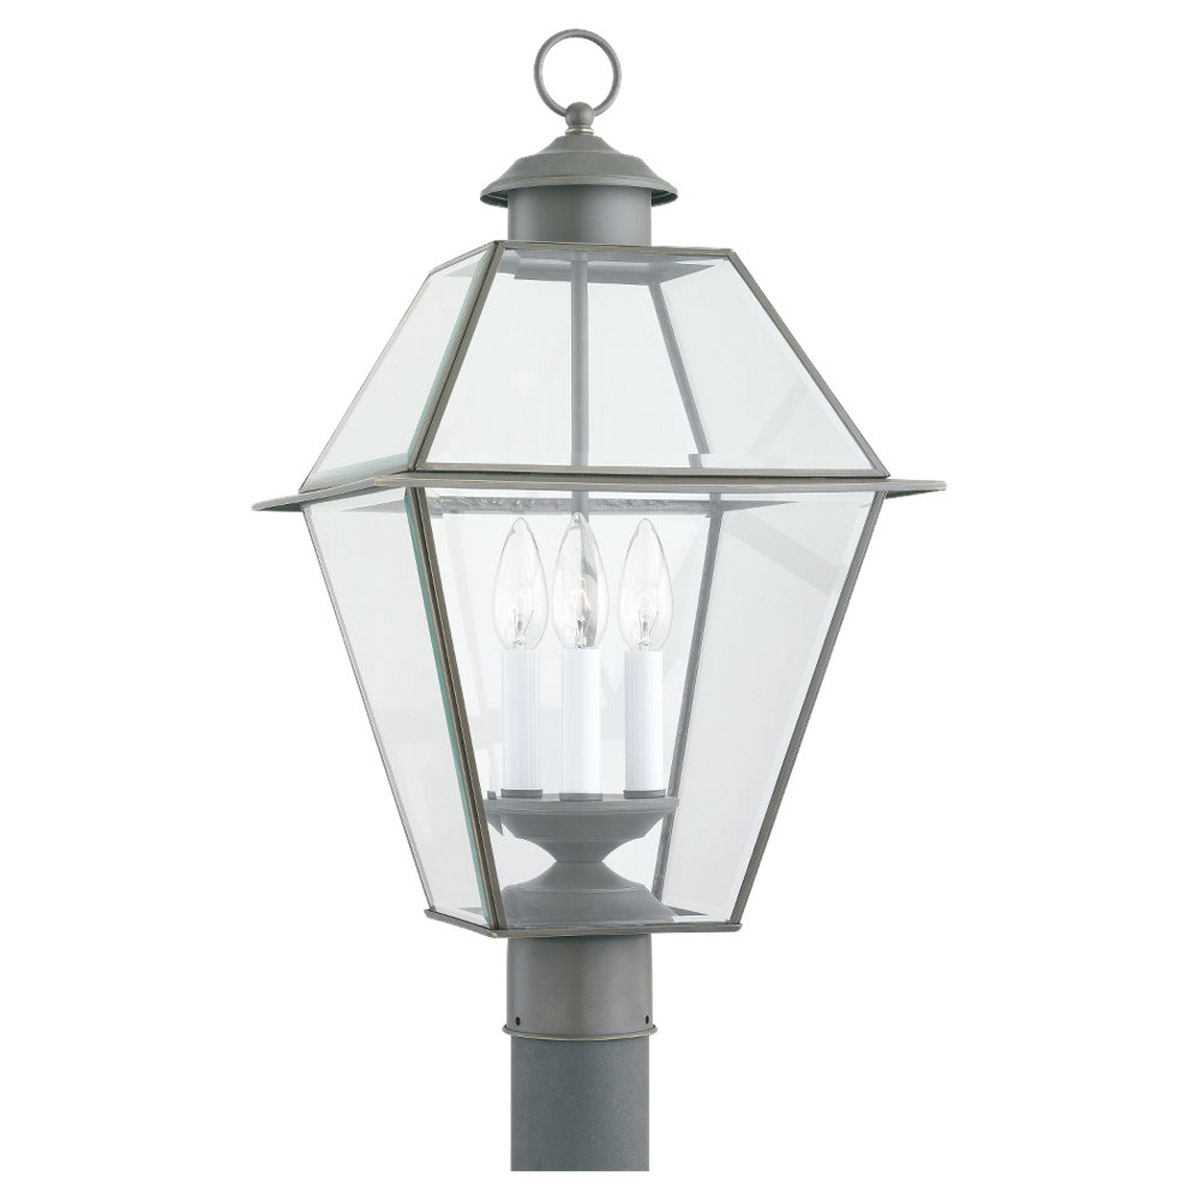 Sea Gull Lighting Colony 3 Light Outdoor Post Lantern in Antique Bronze 8258-71